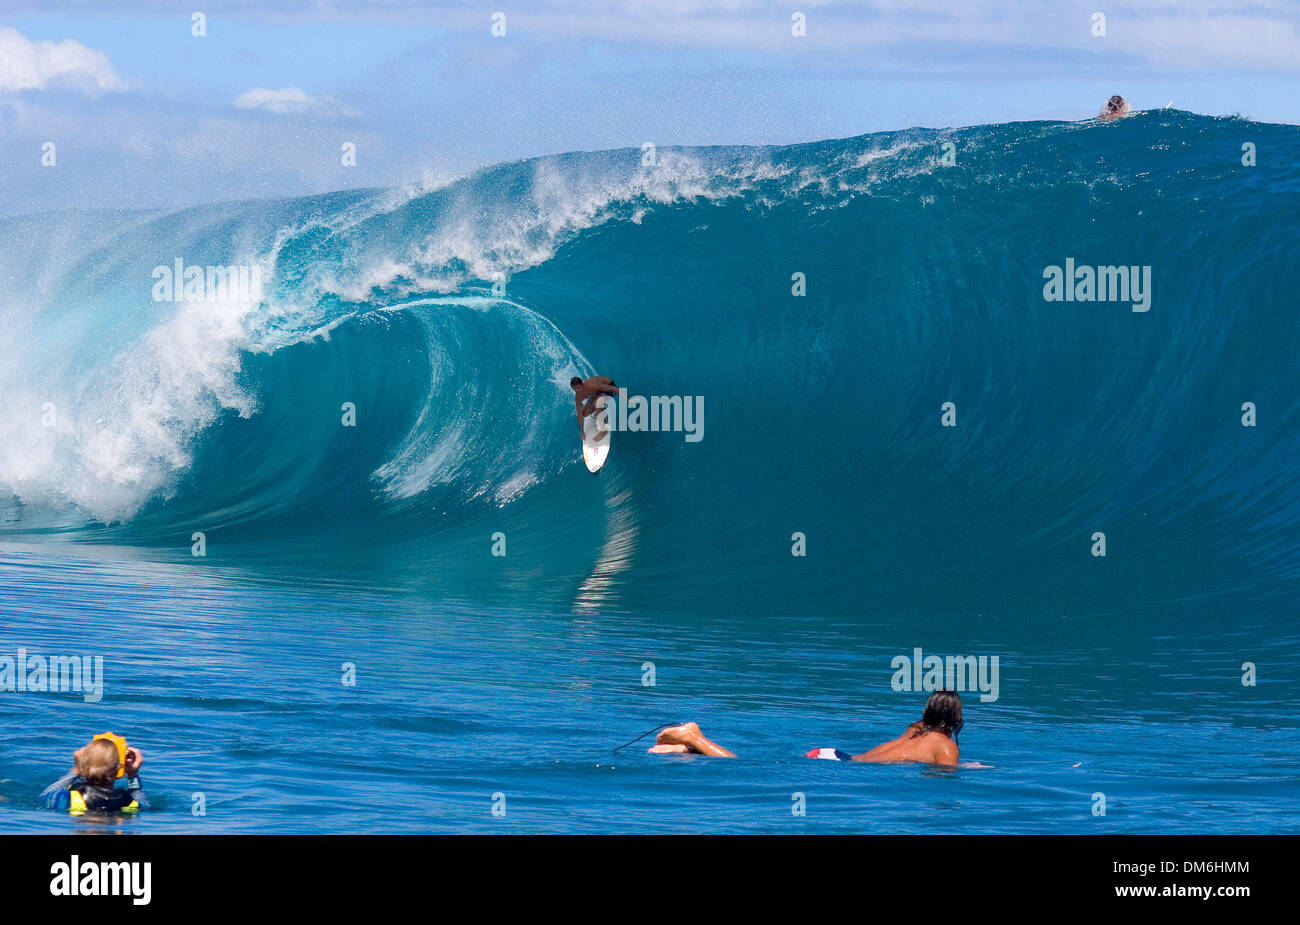 May 03, 2005; Teahupoo, Tahiti, Tahiti; Hawaiian IAN WALSH rides a 10ft wave at Teahupoo. Walsh enjoyed one of the most perfect days of surf at Teahupoo amongst a host the best surfers in the world including reigning ASP three times world champion Andy Irons (Haw) and defending Billabong Pro Tahiti winner CJ Hobgood (USA). The Billabong Pro, Teahupoo is the third WCT event on the 2 - Stock Image